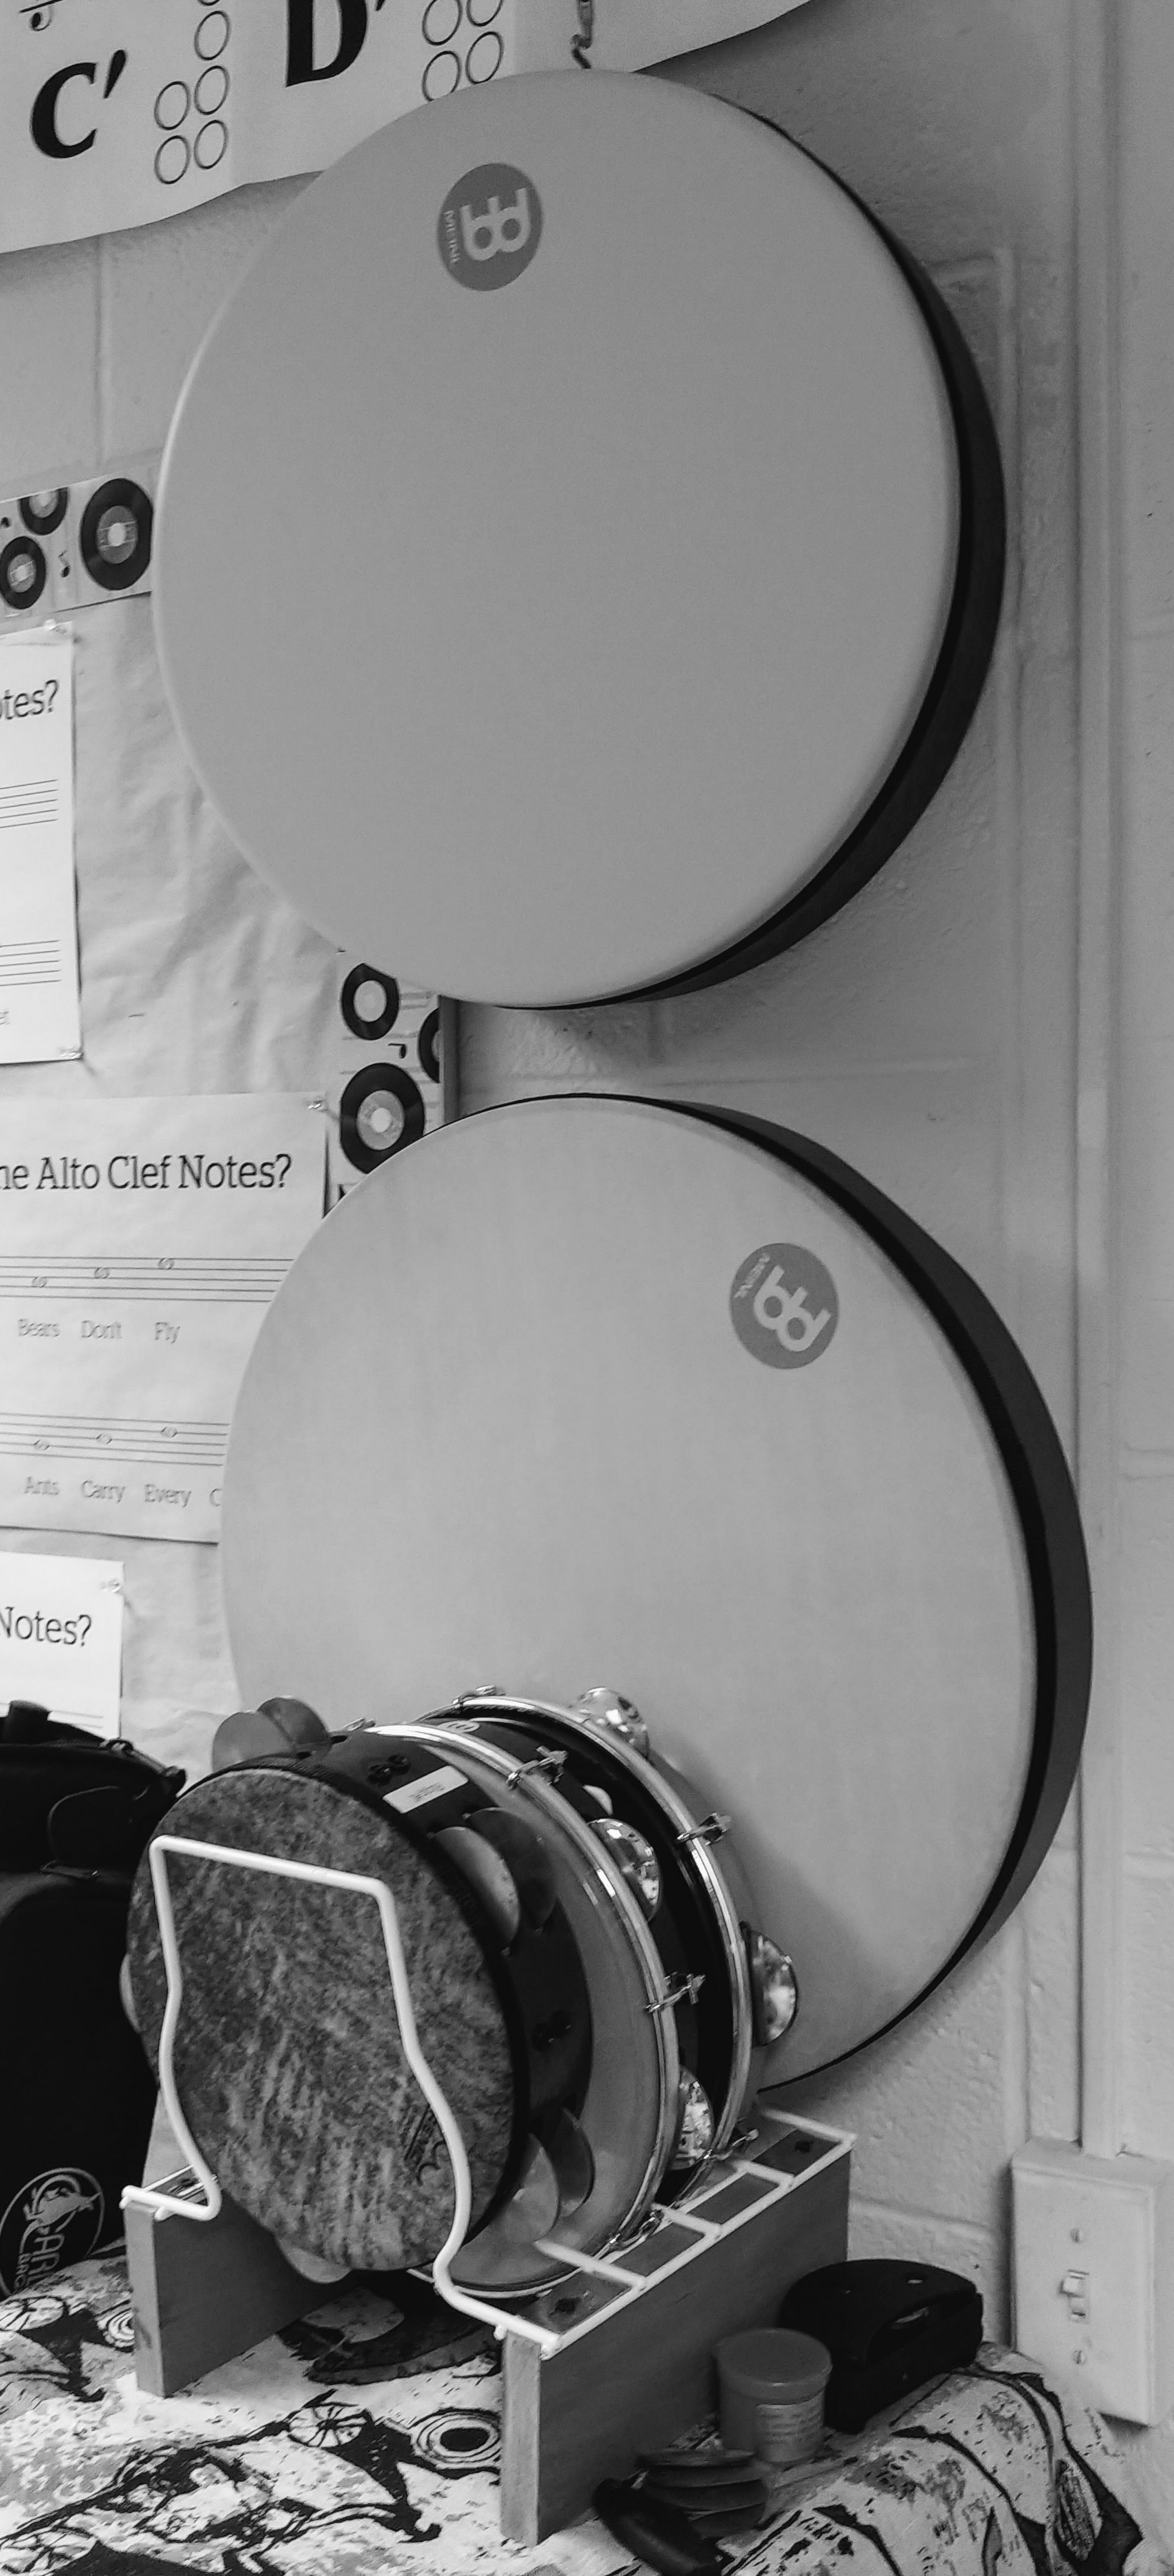 Frame Drums, Pandeiro, and Riqq